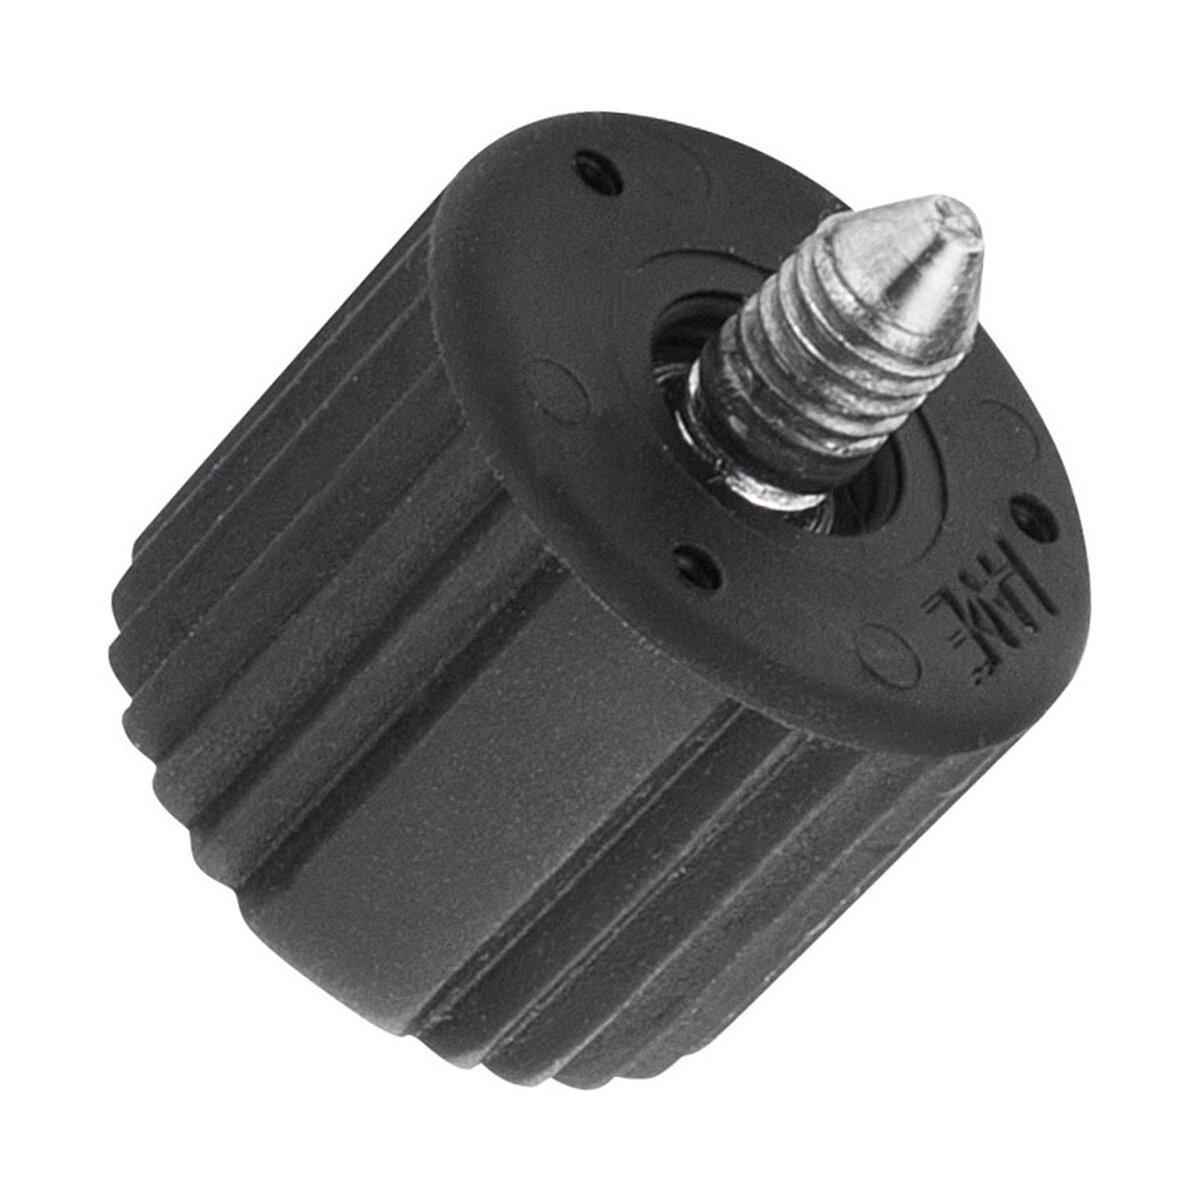 Takeway Spare Ball Head Knob T-BK01 for T1 Clampod [TY106]